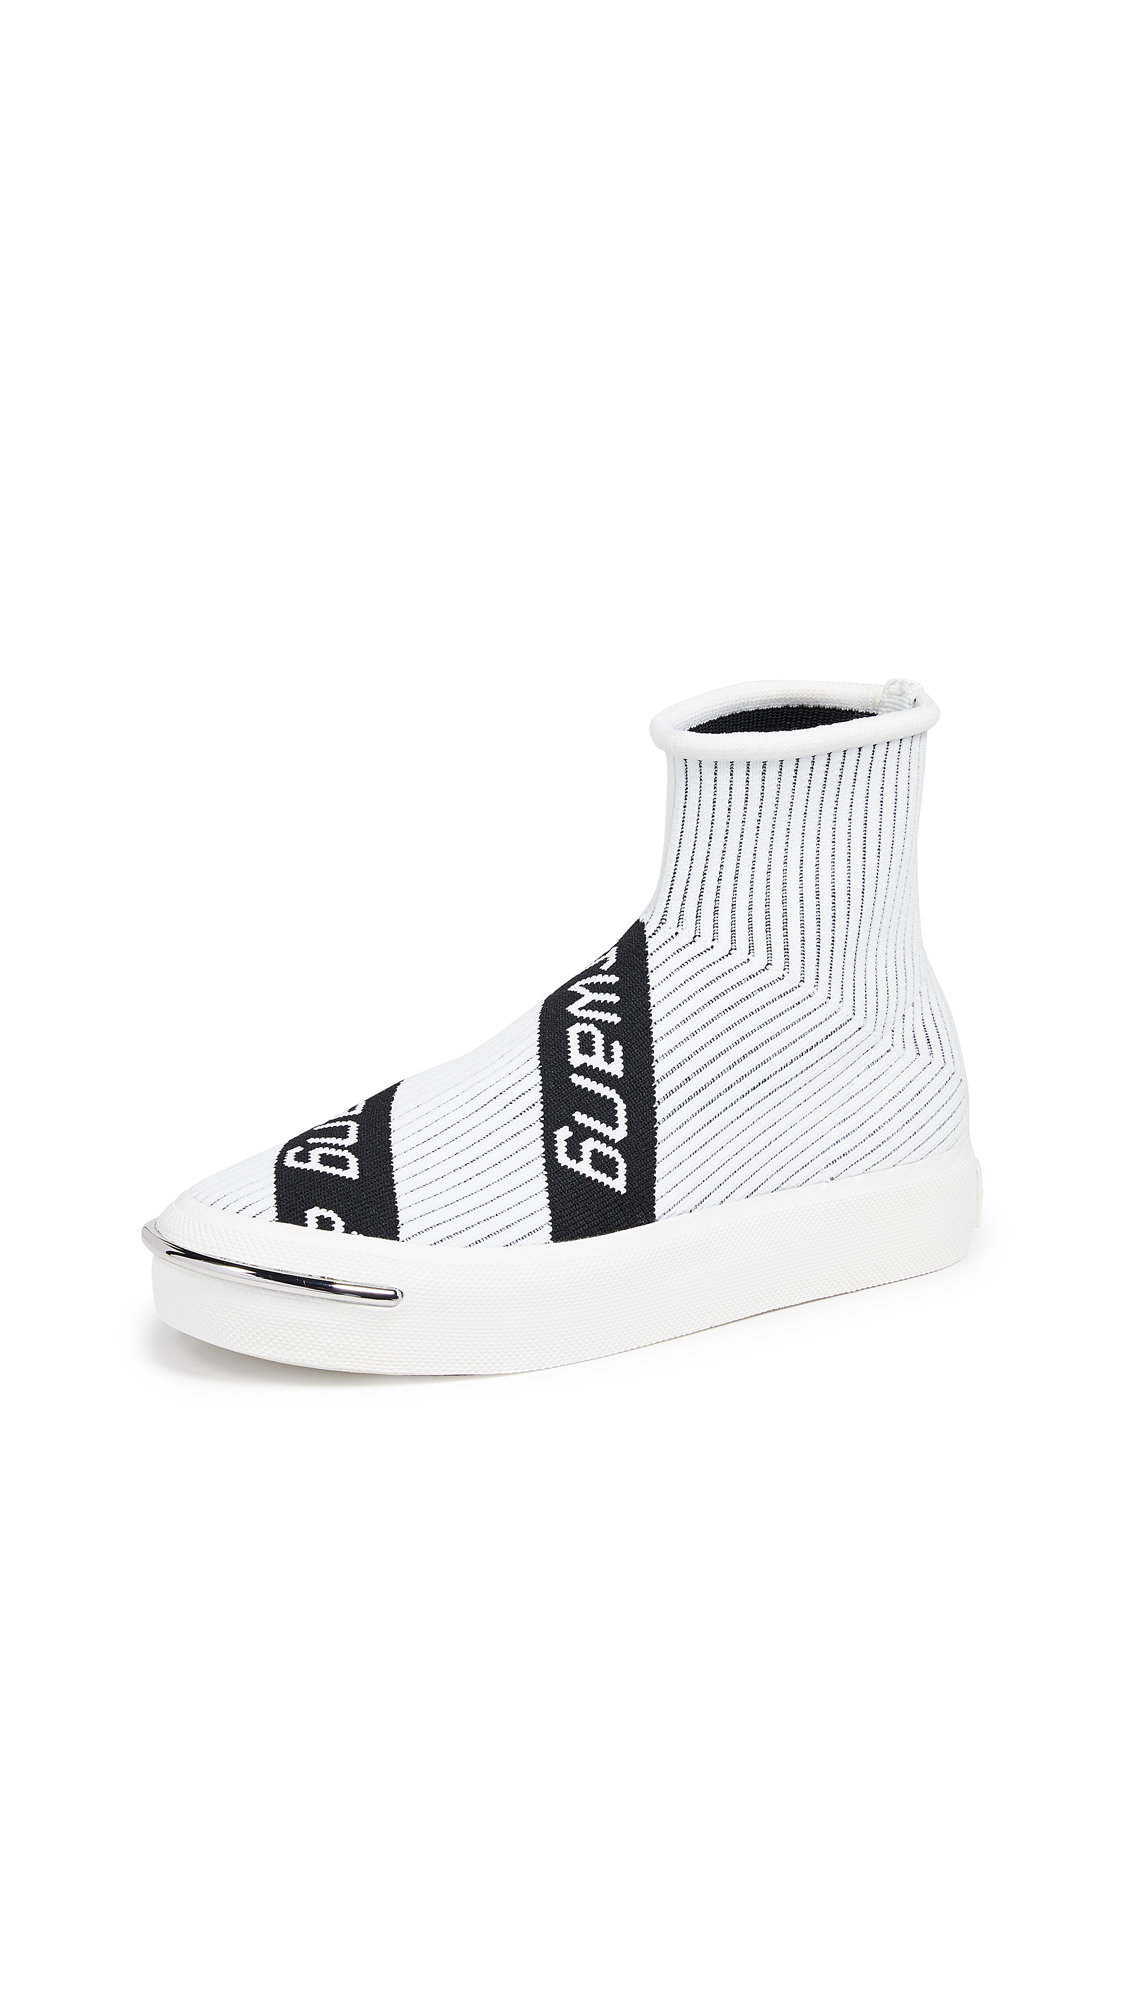 Alexander Wang Pia Knit Sneakers - White